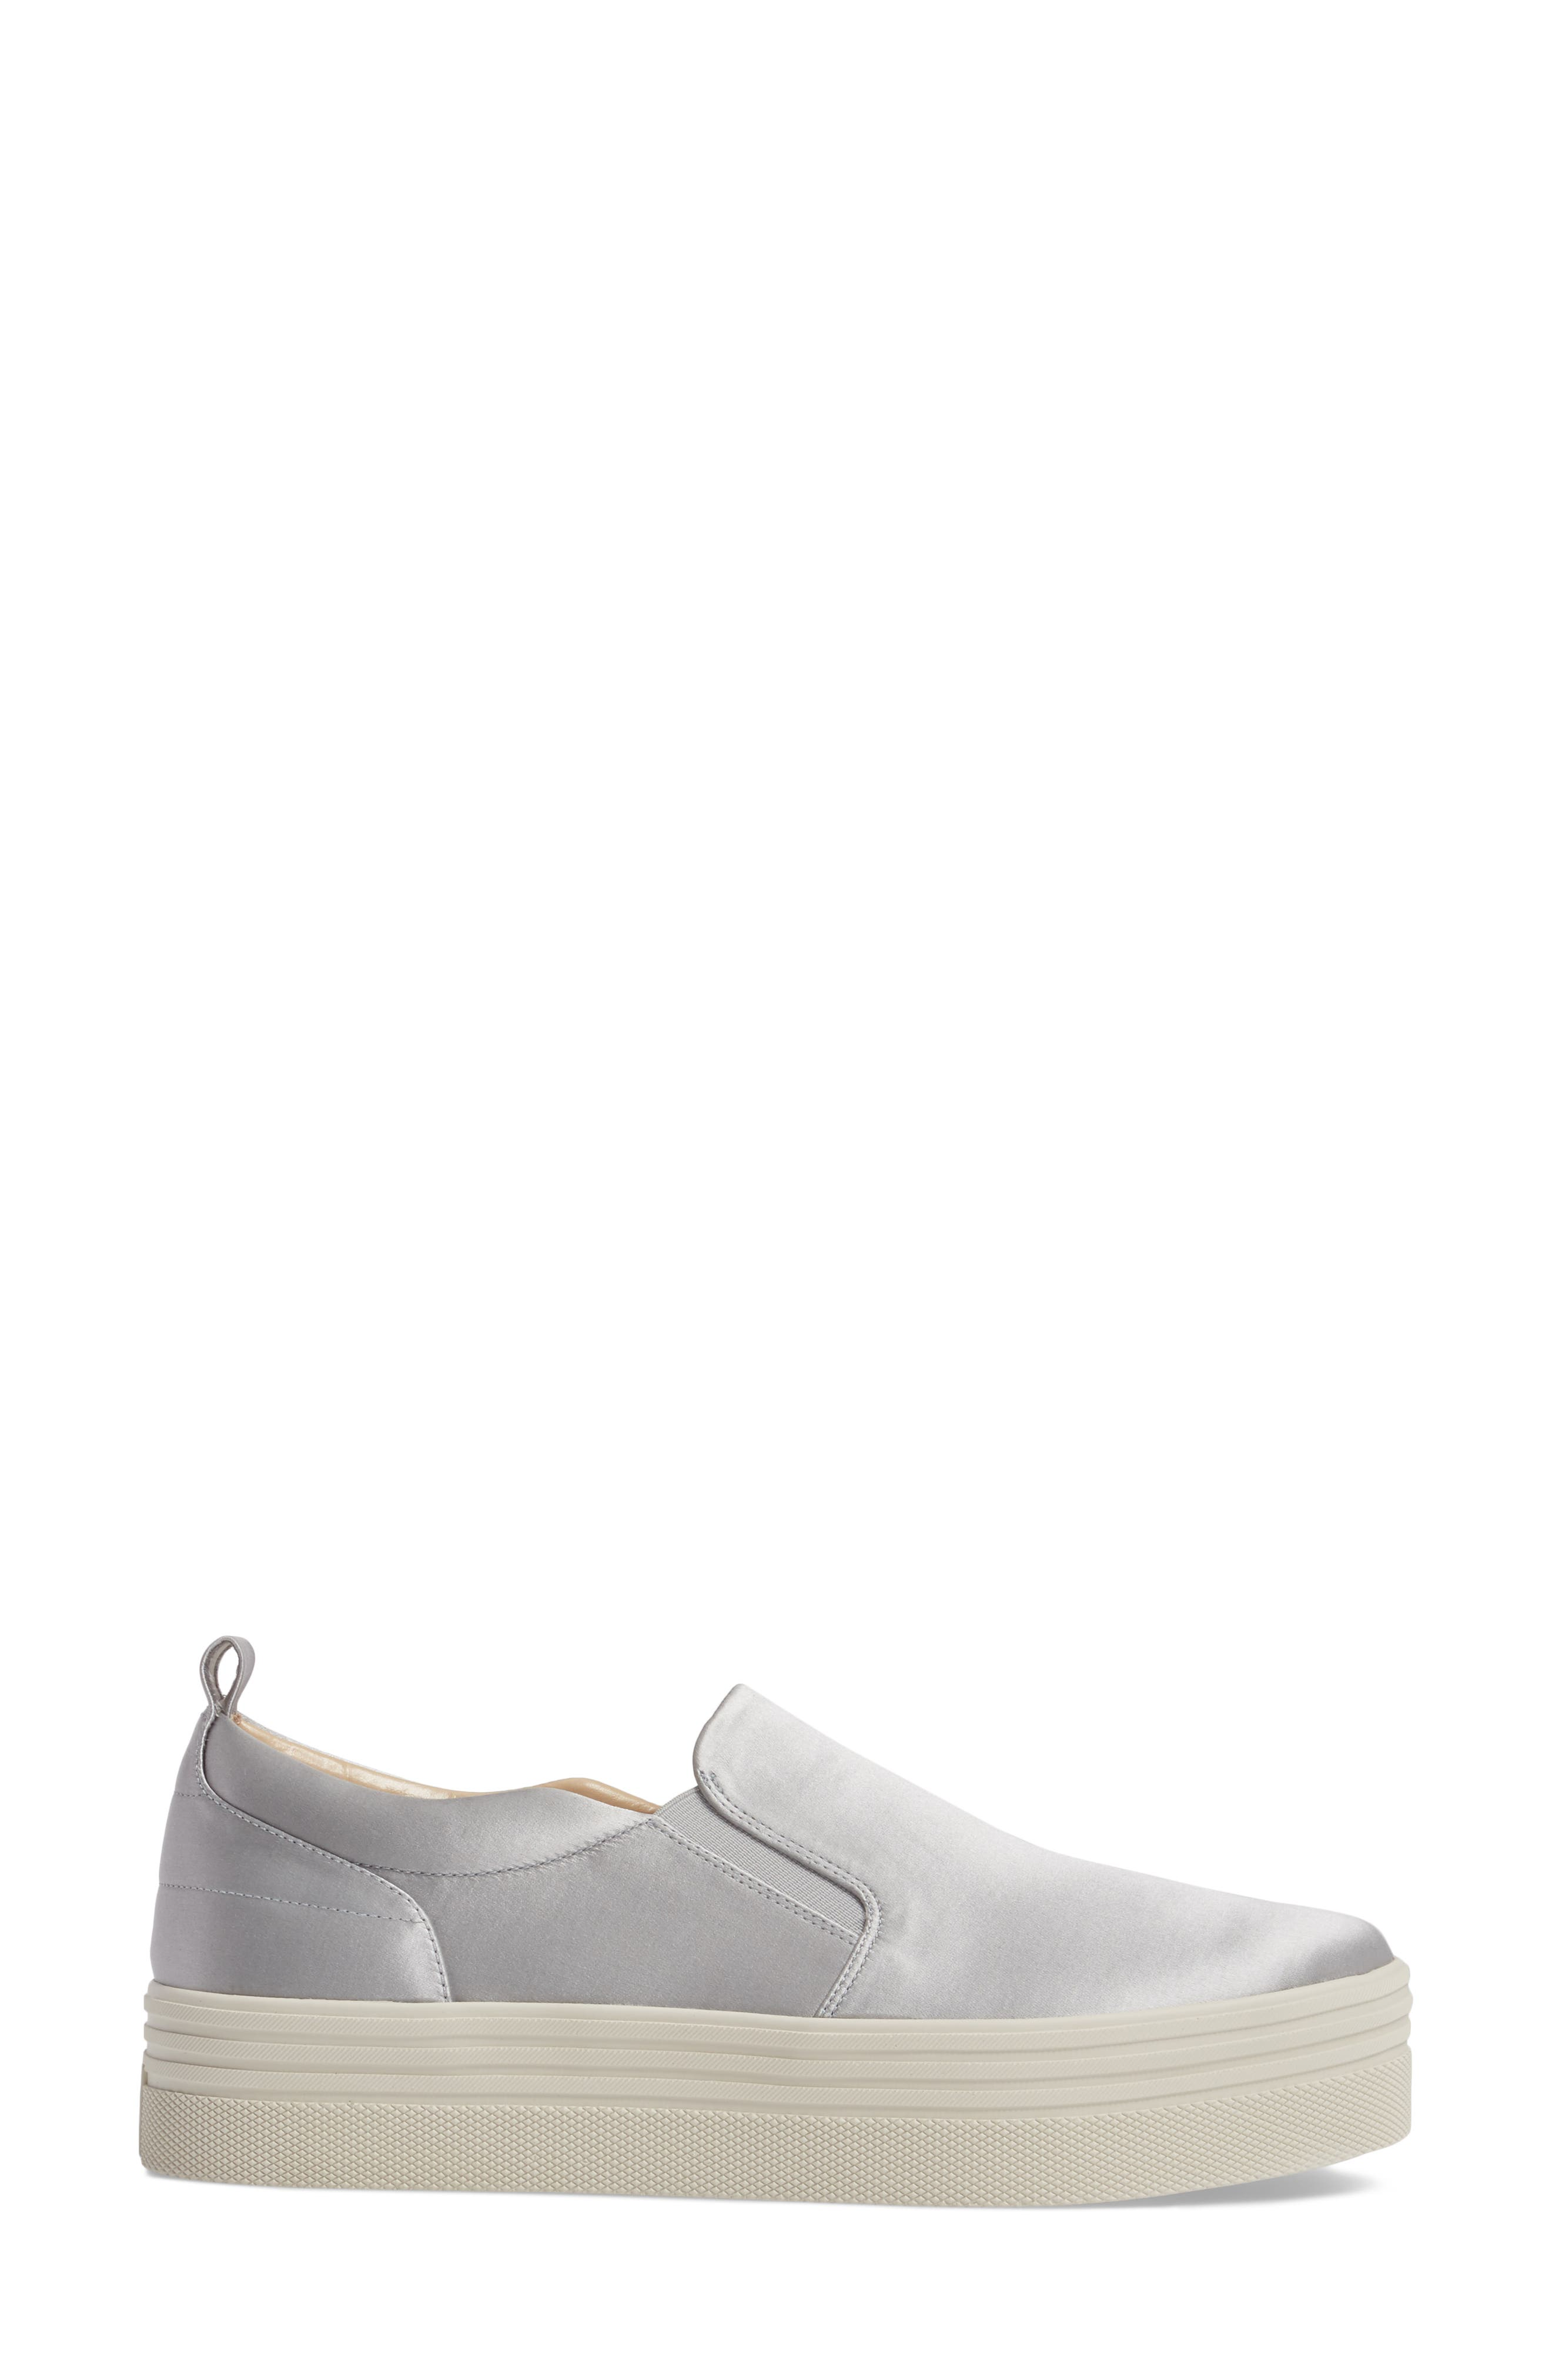 Alternate Image 3  - Marc Fisher LTD Elise Platform Sneaker (Women)